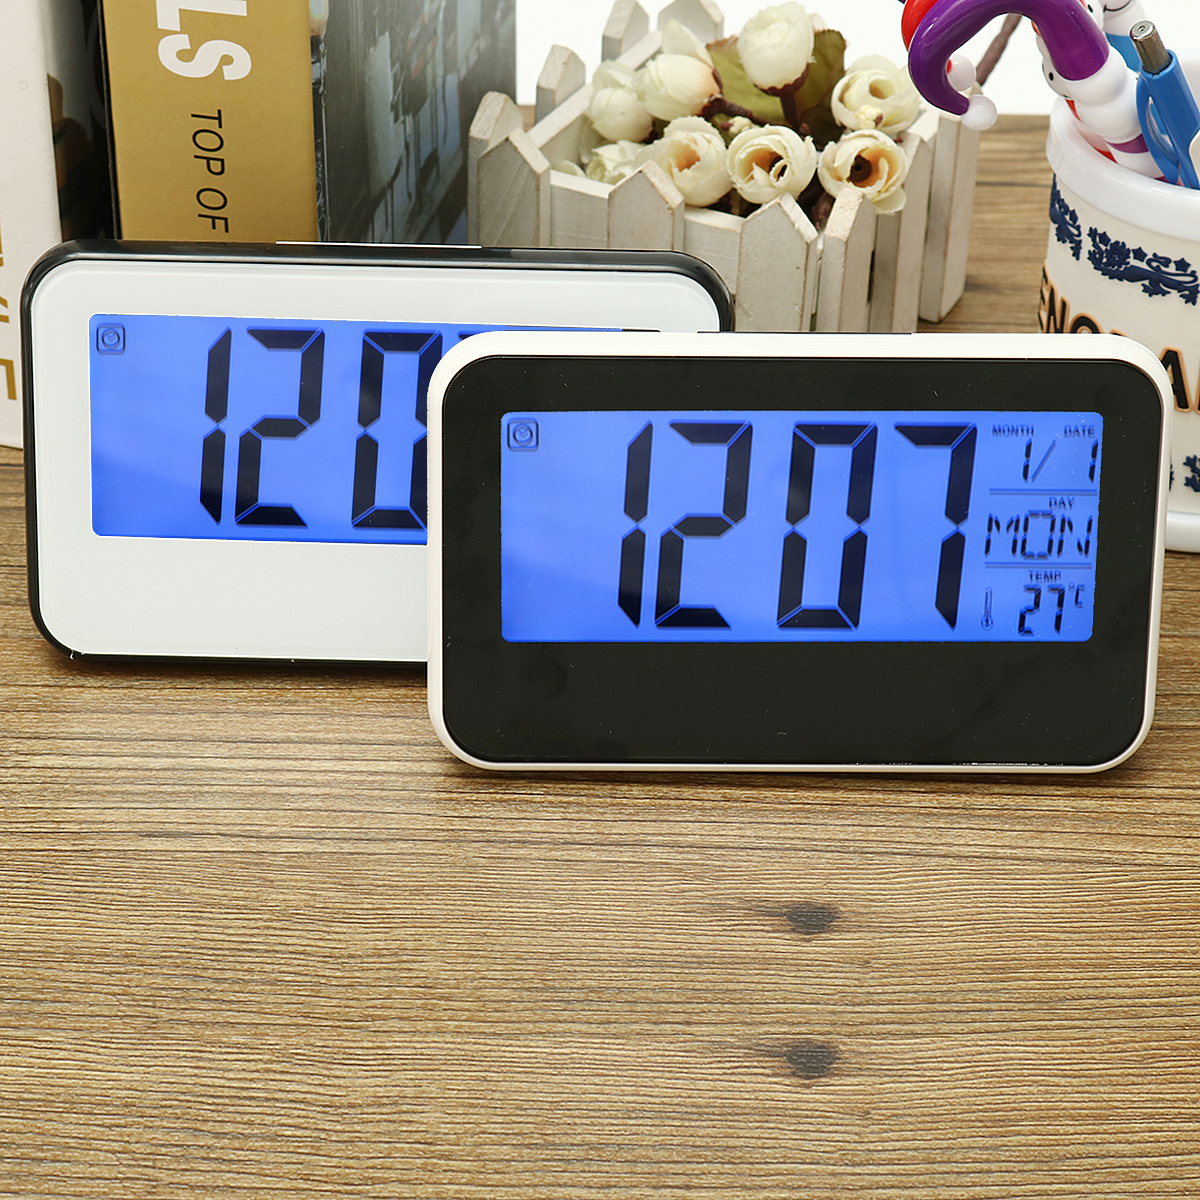 LCD Display Digital Alarm Clock Sound Controlled With T